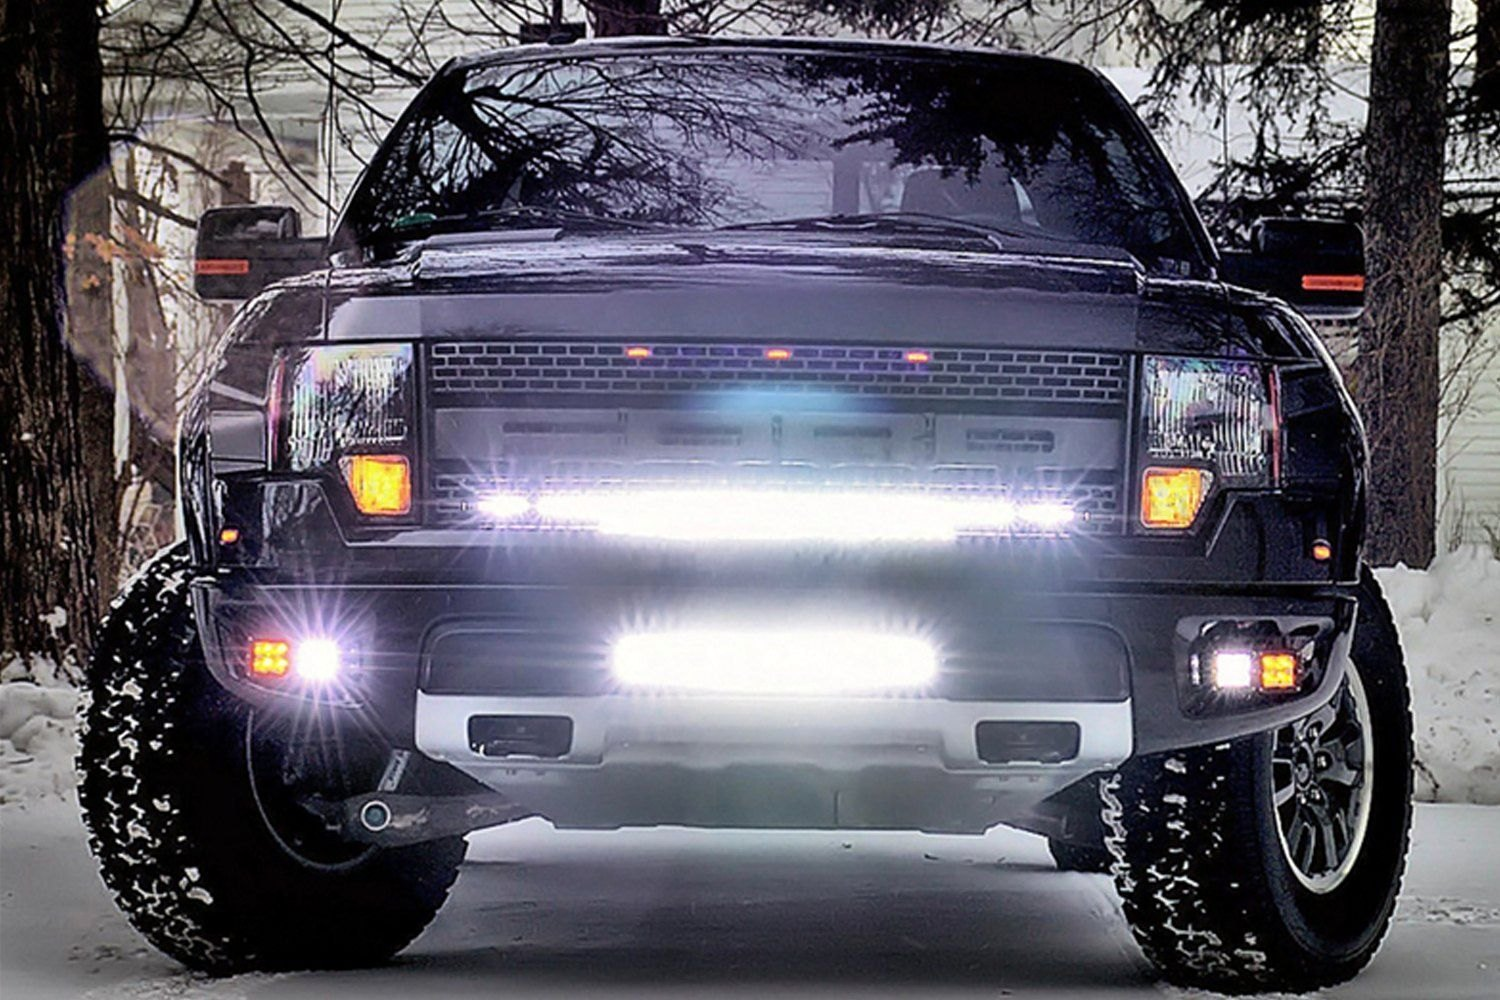 Rigid industries 40133 bumper mount for 20 e or sr series led barrigid industries bumper mount for 20 e or sr series led light aloadofball Image collections